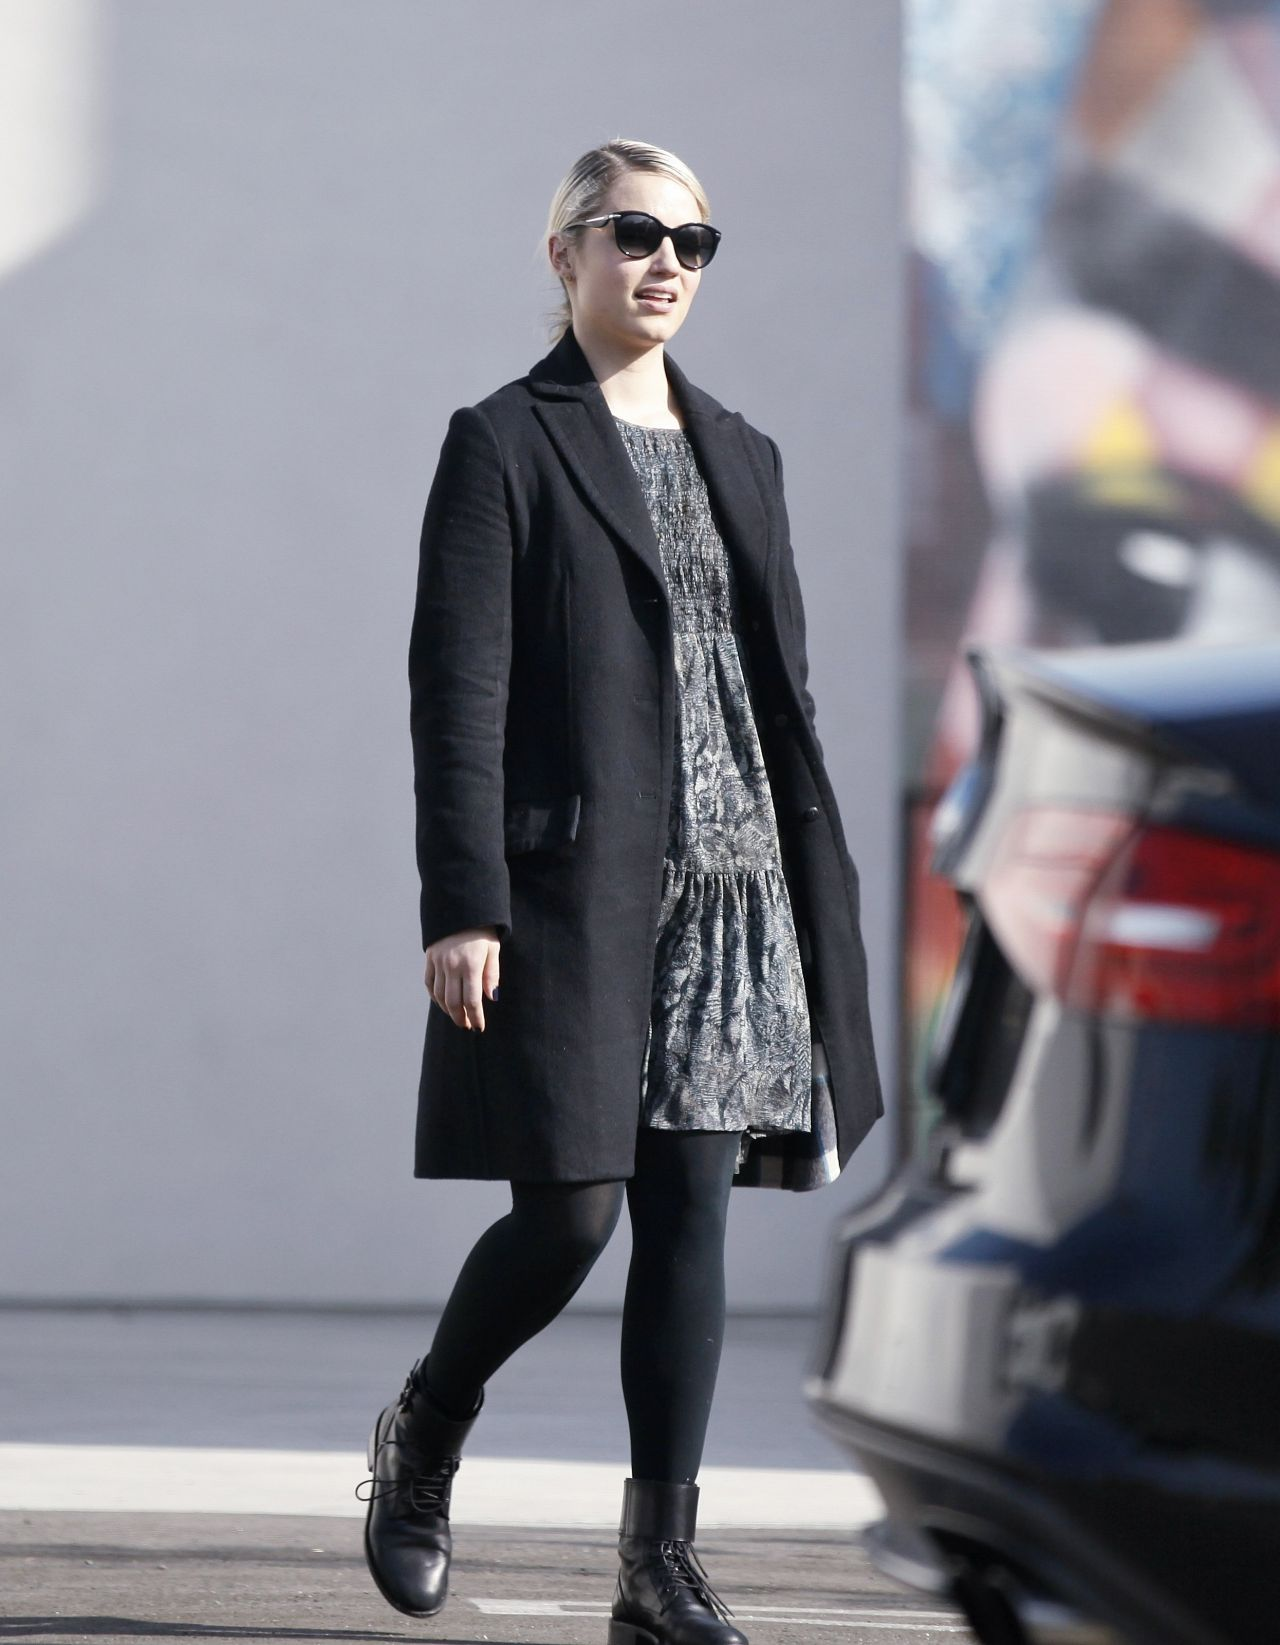 Fantastic Dianna Agron Autumn Style  Out In New York City 11202015